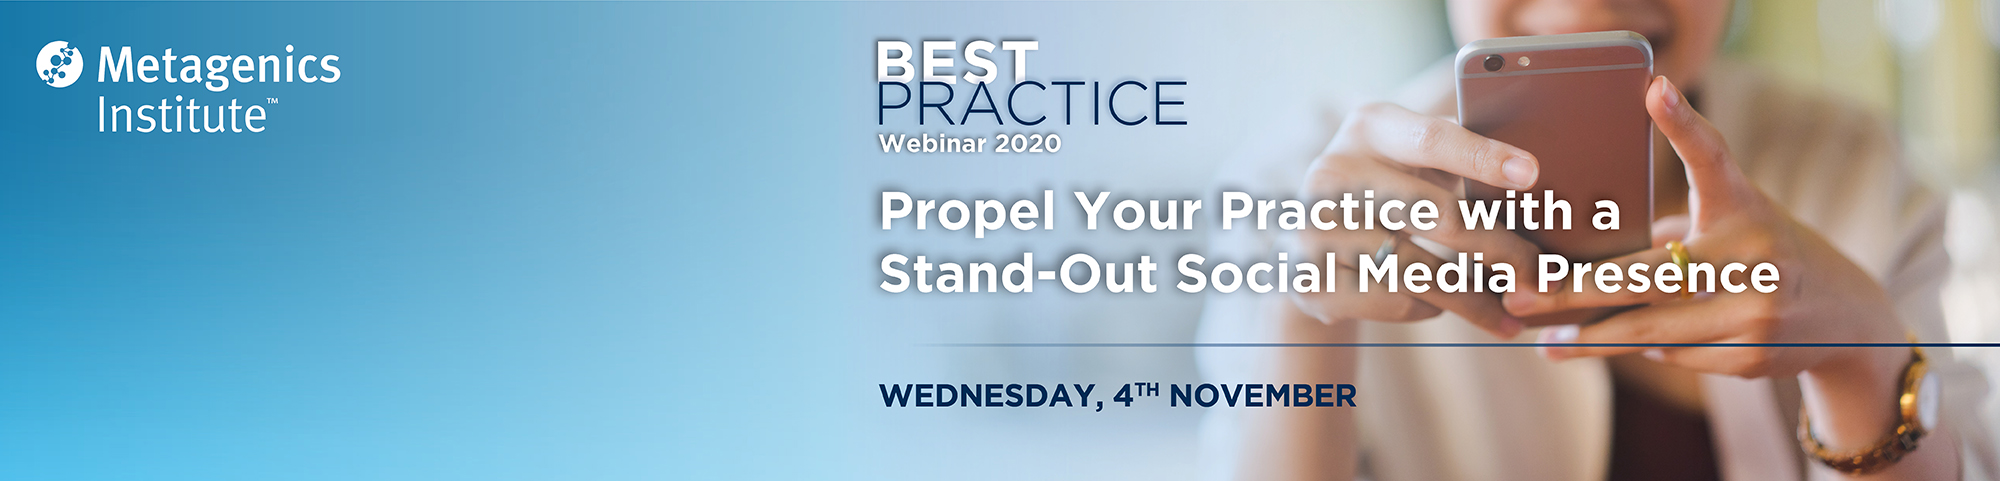 Best Practice Webinar: Propel Your Practice with a Stand-Out Social Media Presence